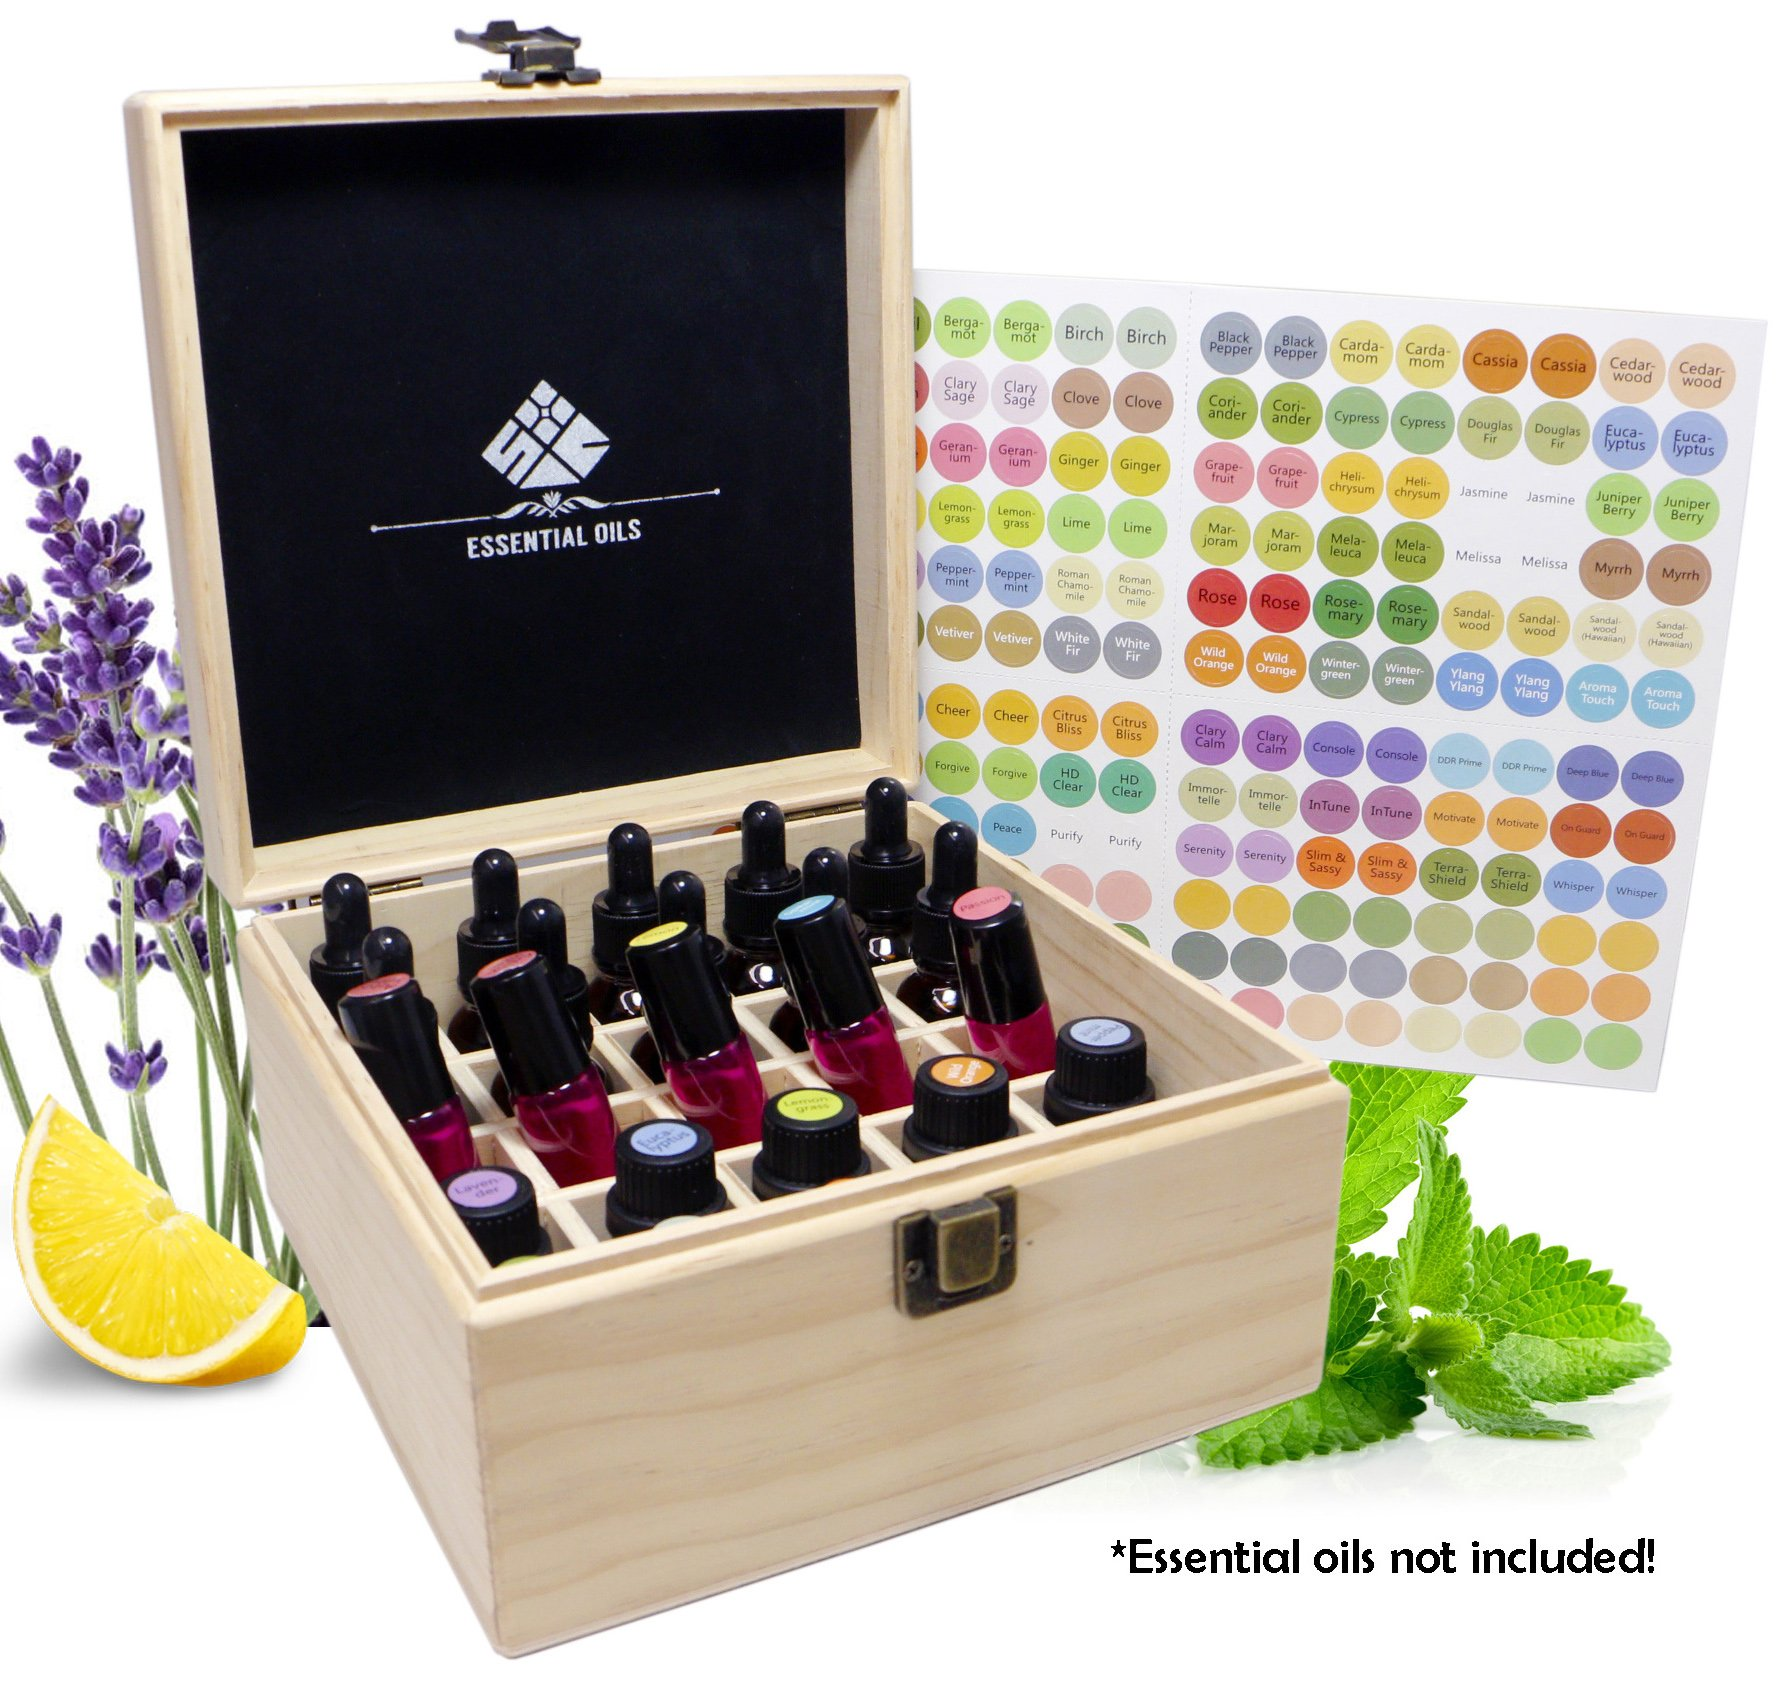 SXC 25 Slot Wooden Essential Oil Box/case, holds 25 5-5ml&10ml Roller Bottles, Perfect Essential Oil Storage/organizer Case For Travel and Presentation by SXC (Image #1)